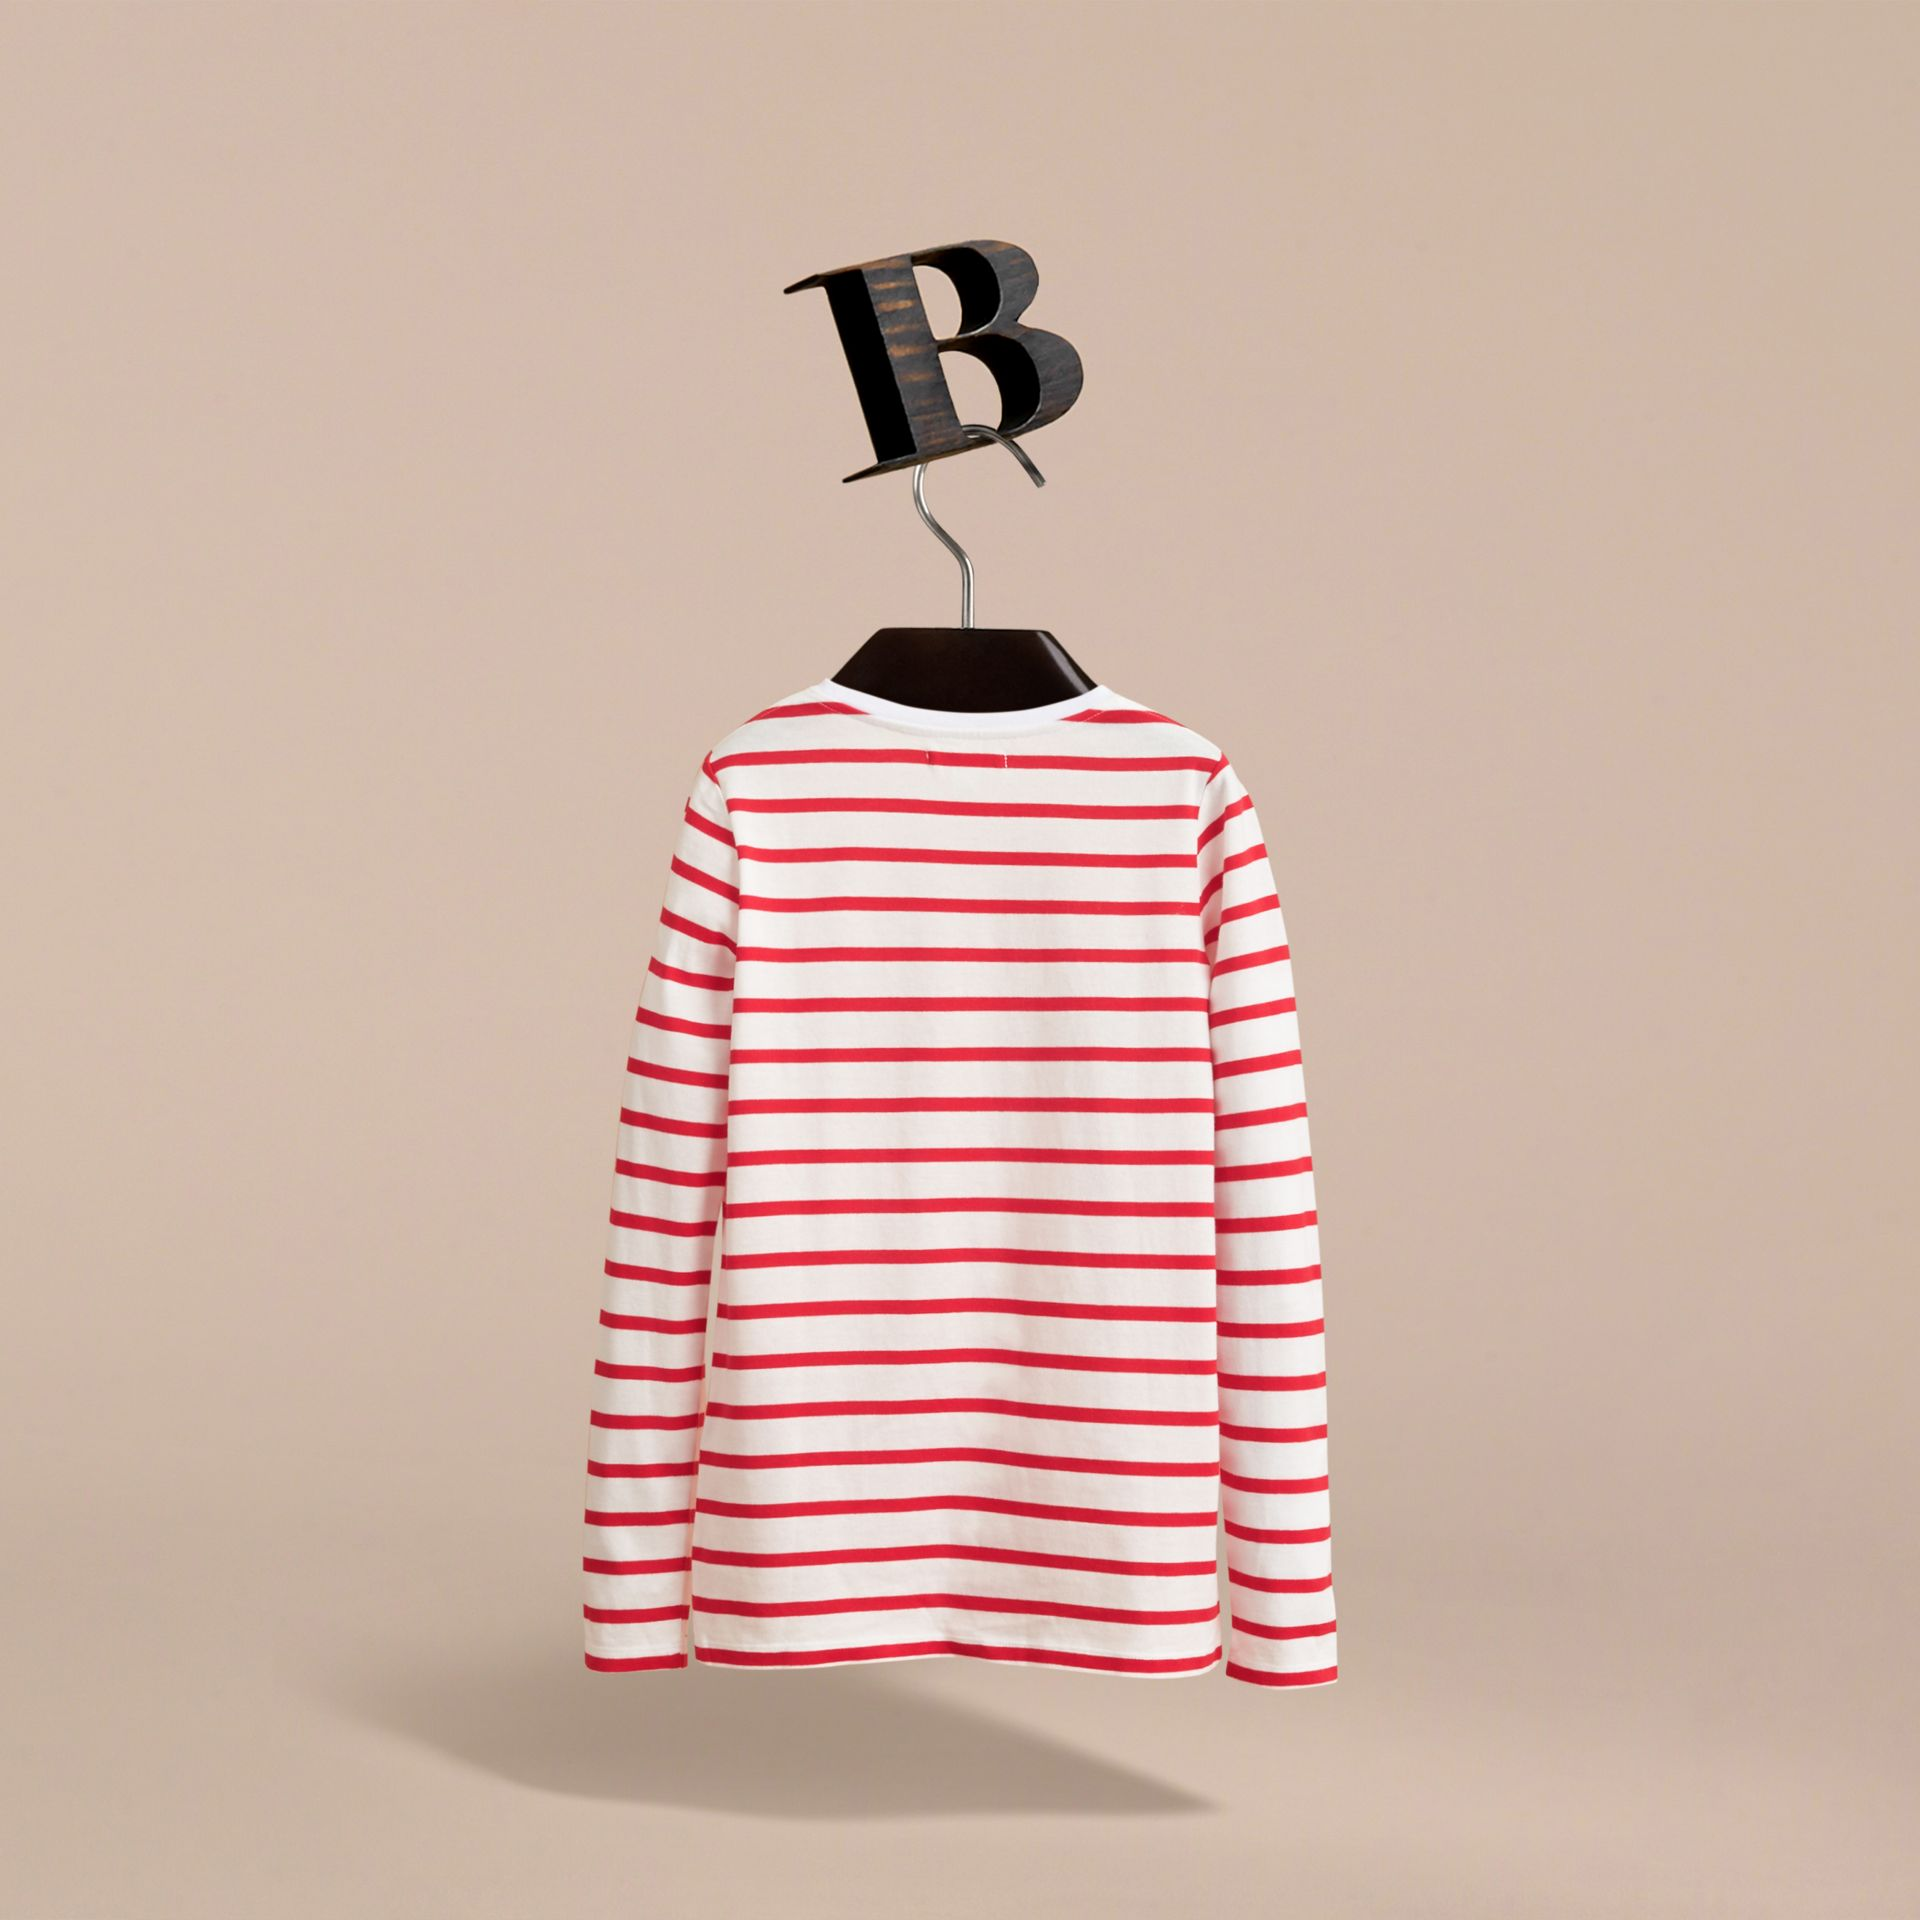 Unisex Pallas Helmet Motif Breton Stripe Cotton Top in Parade Red | Burberry - gallery image 4